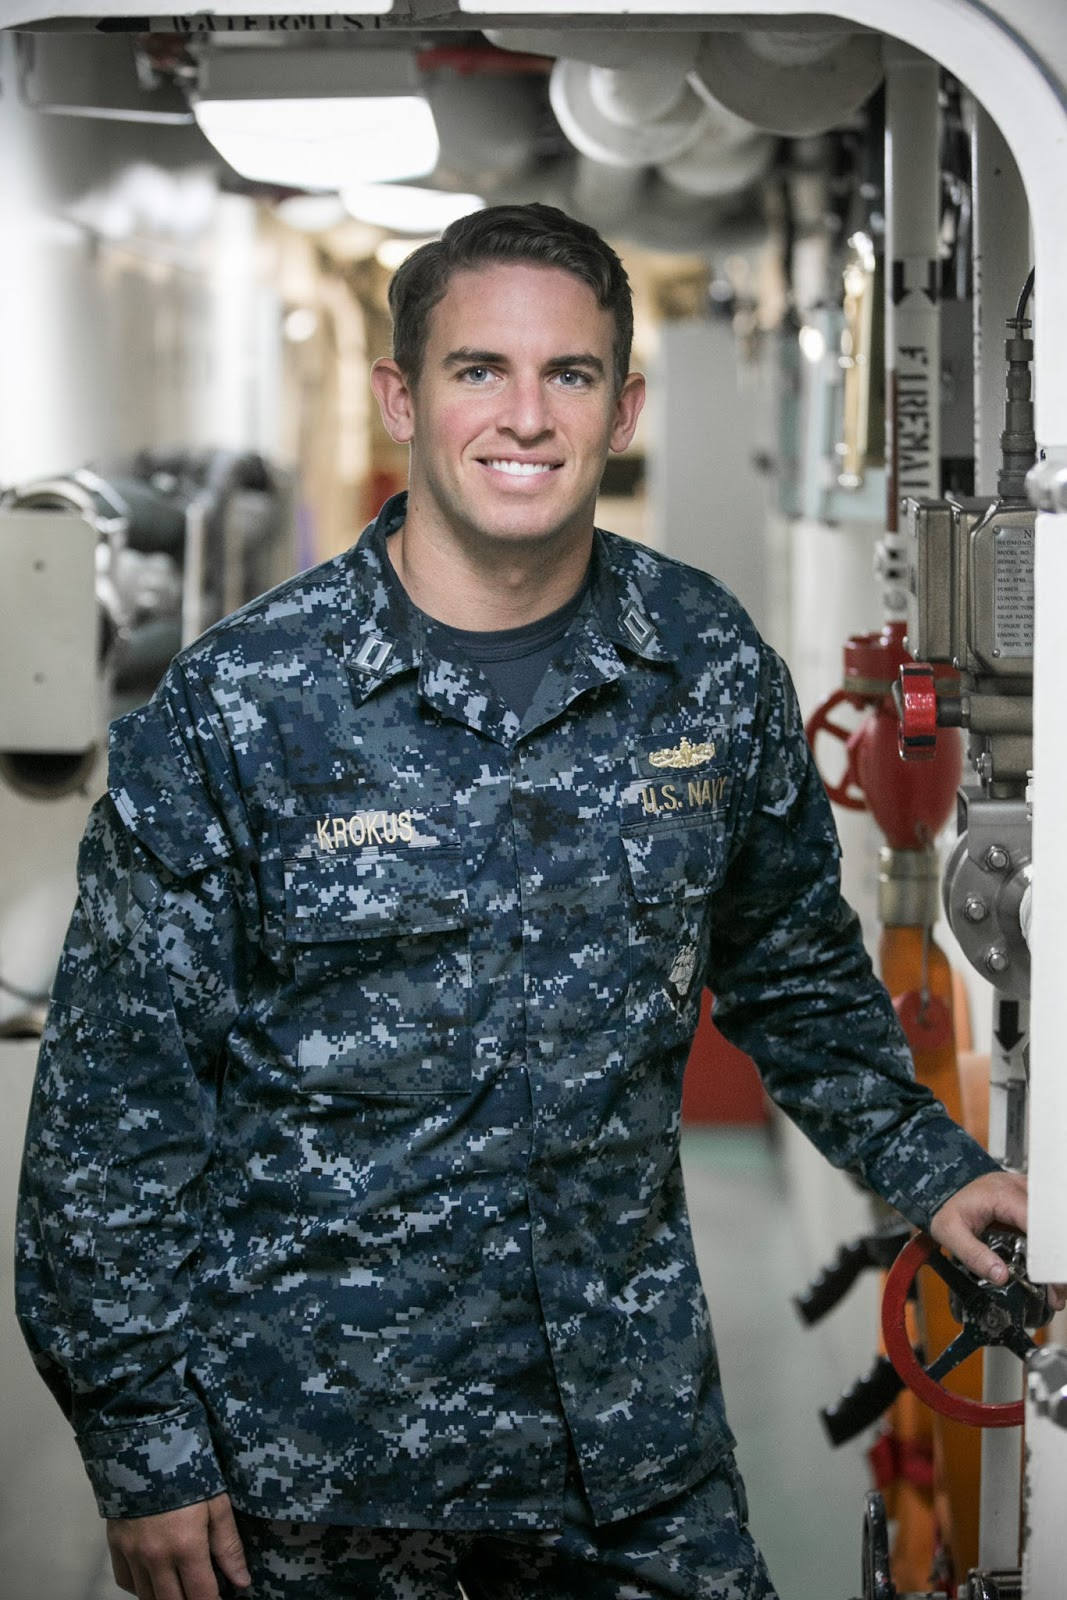 Lt. Christopher Krokus is a surface warfare officer serving with LCS Crew  213 based in San Diego.